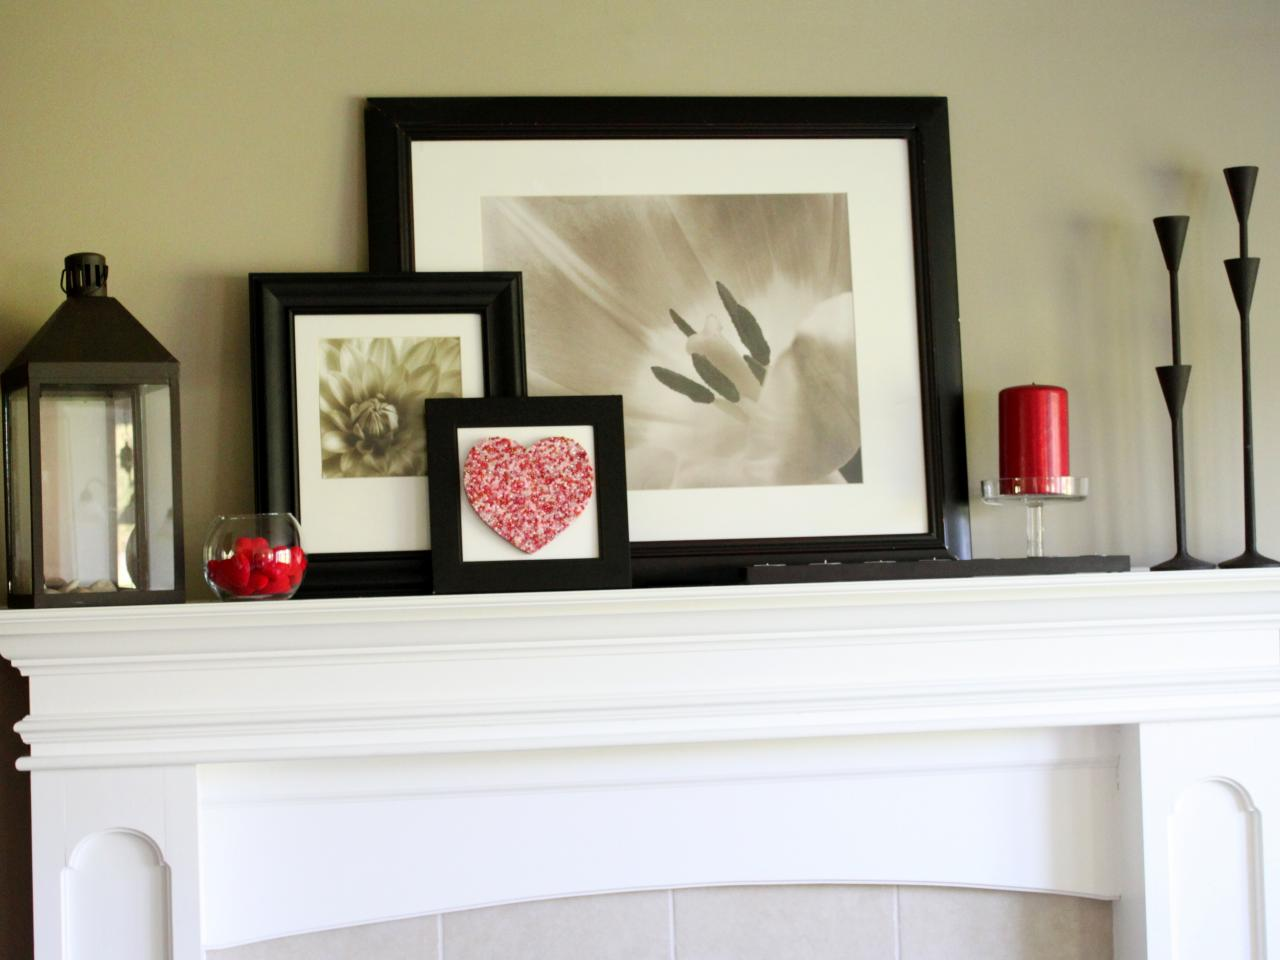 15 ideas for decorating your mantel year round hgtv 39 s for How to design a fireplace mantel